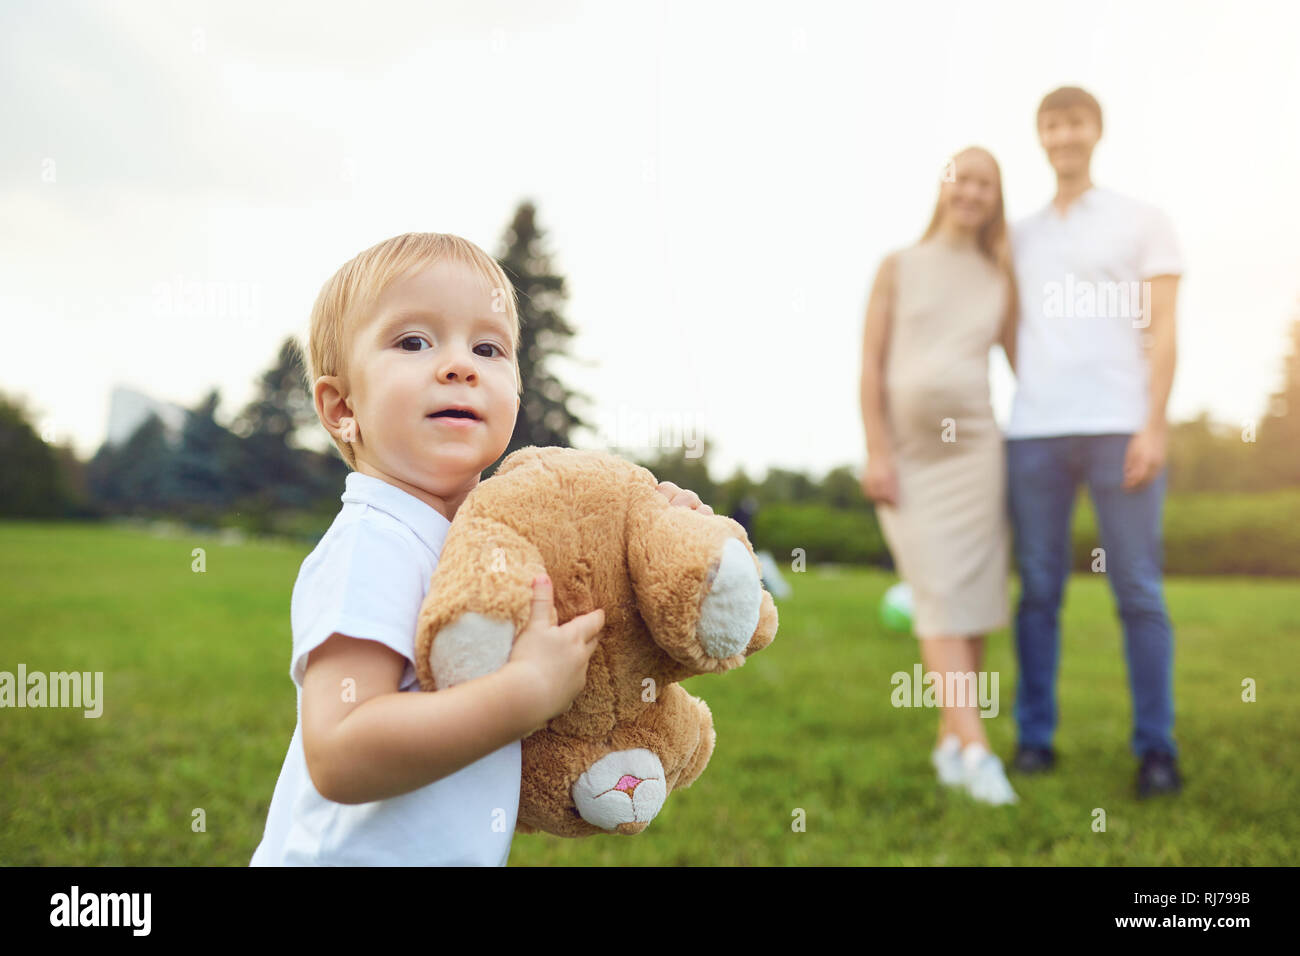 Adorable boy carrying toy in park with parents Stock Photo